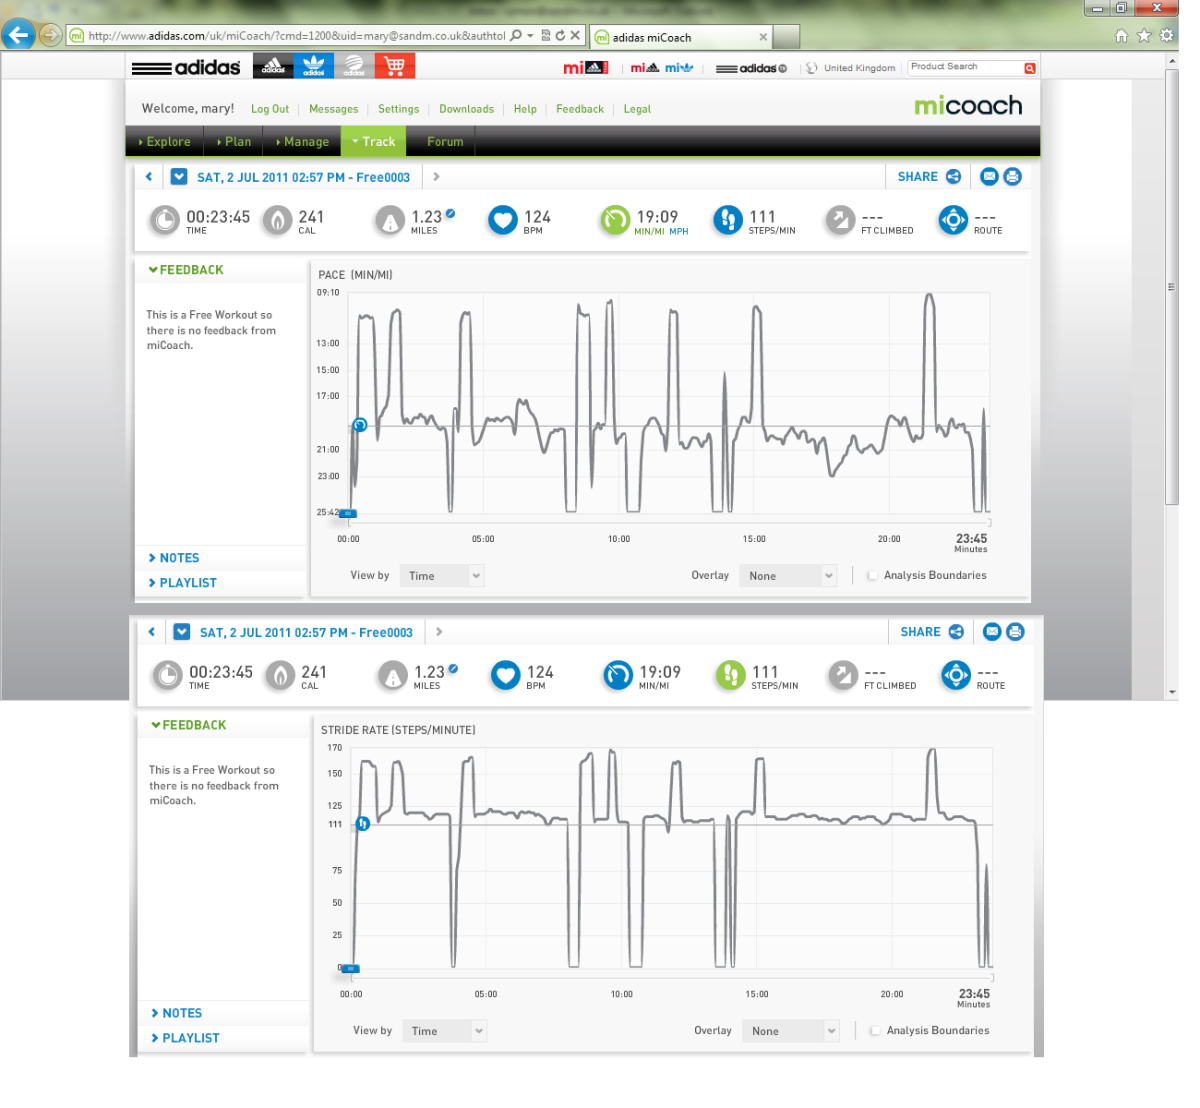 Adidas miCoach - Fitness and Health Gadgets: Tracking your Life